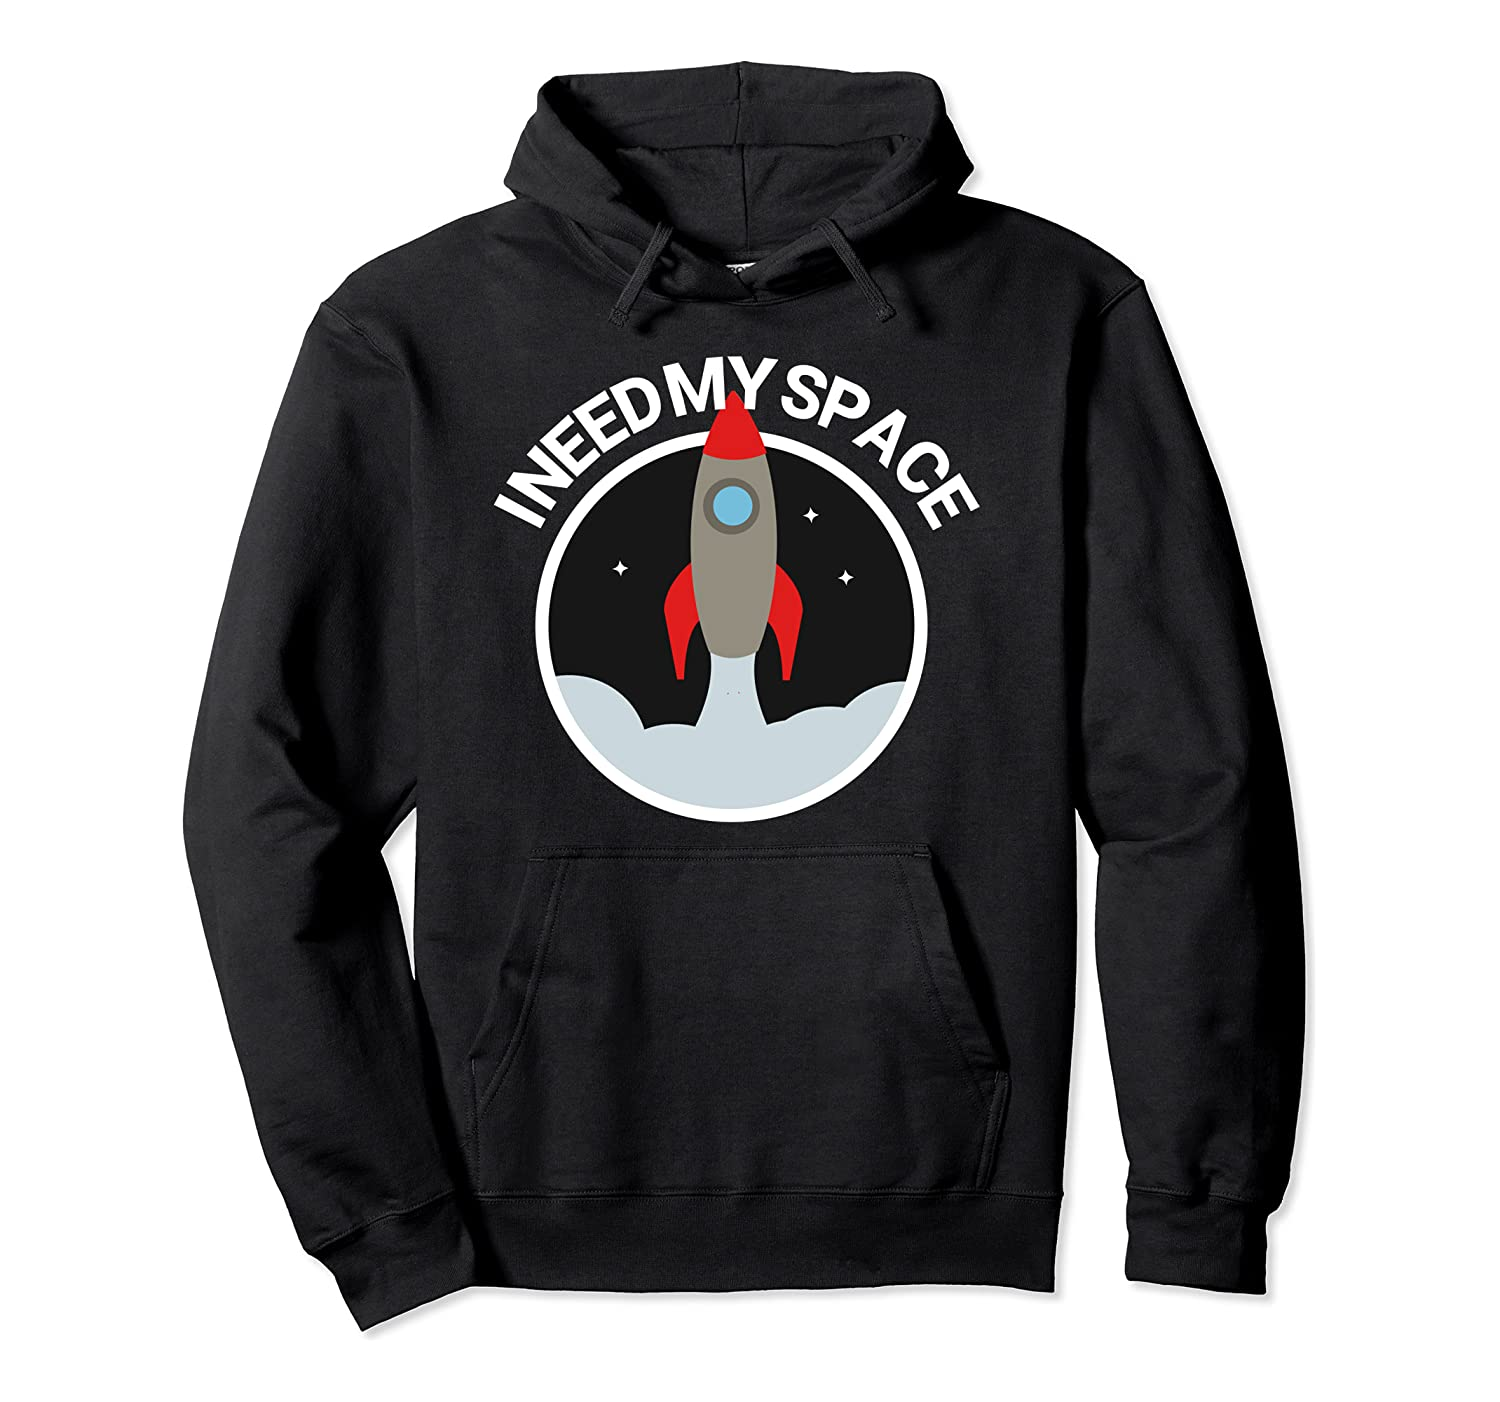 Funny I Need My Space Hoodie for Anti Social Shuttle Club